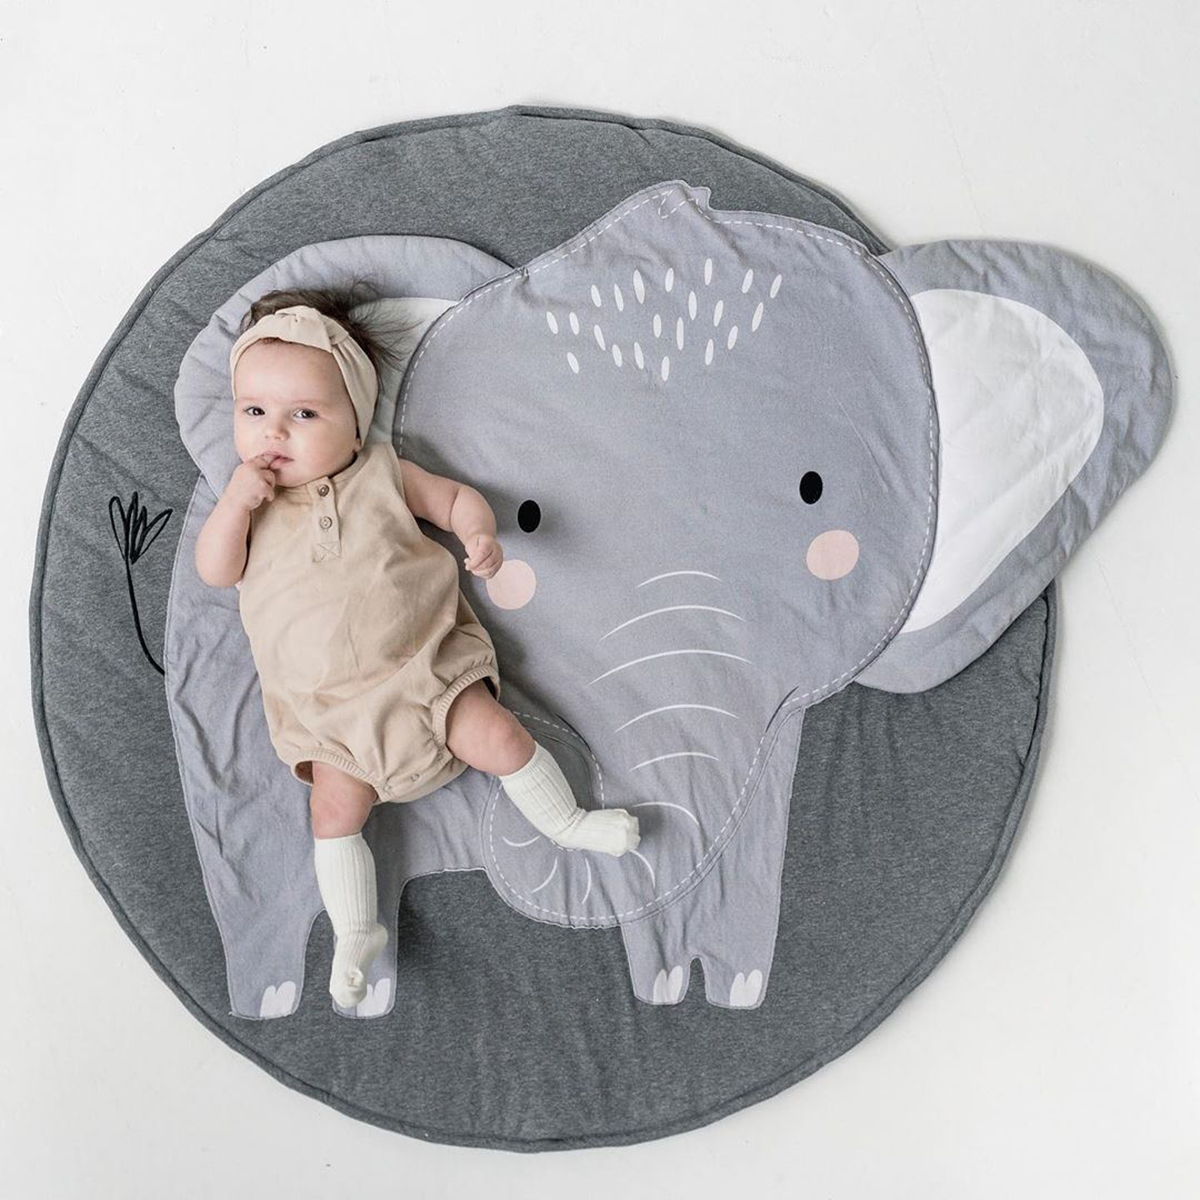 New Pattern Baby Play Mats Kids Crawling Carpet Floor Rug Baby Bedding Elephant Blanket Cotton Game Pad Children Room Decoration